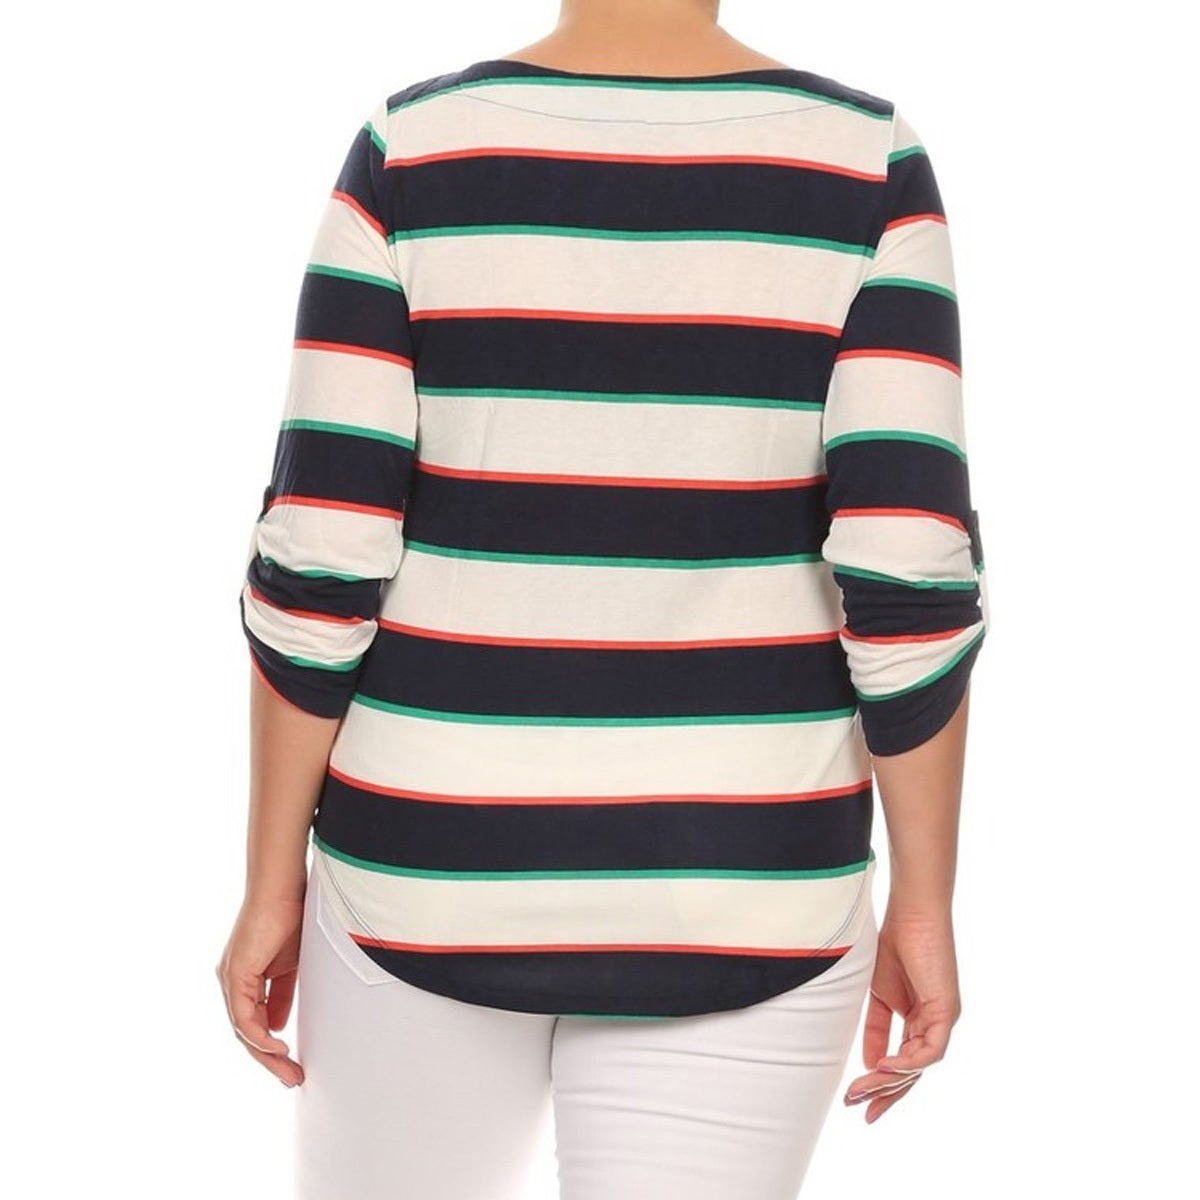 d0cd0ce7a9a Shop Women s Plus-size Striped Tunic - On Sale - Free Shipping On ...